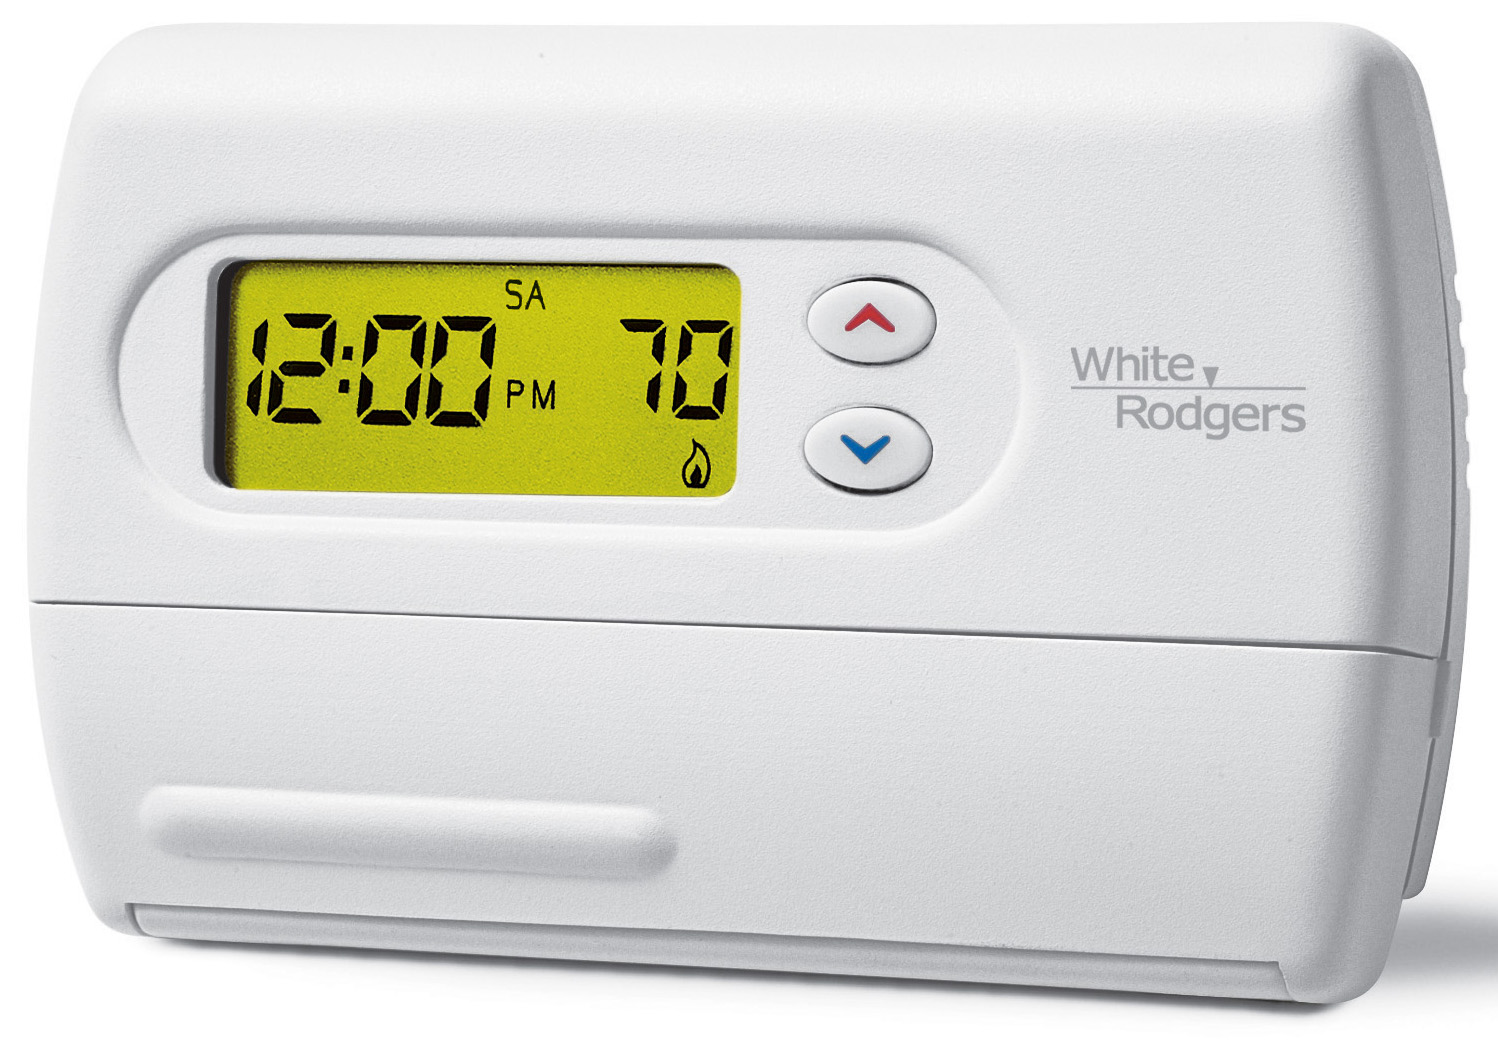 White-Rodgers Thermostats